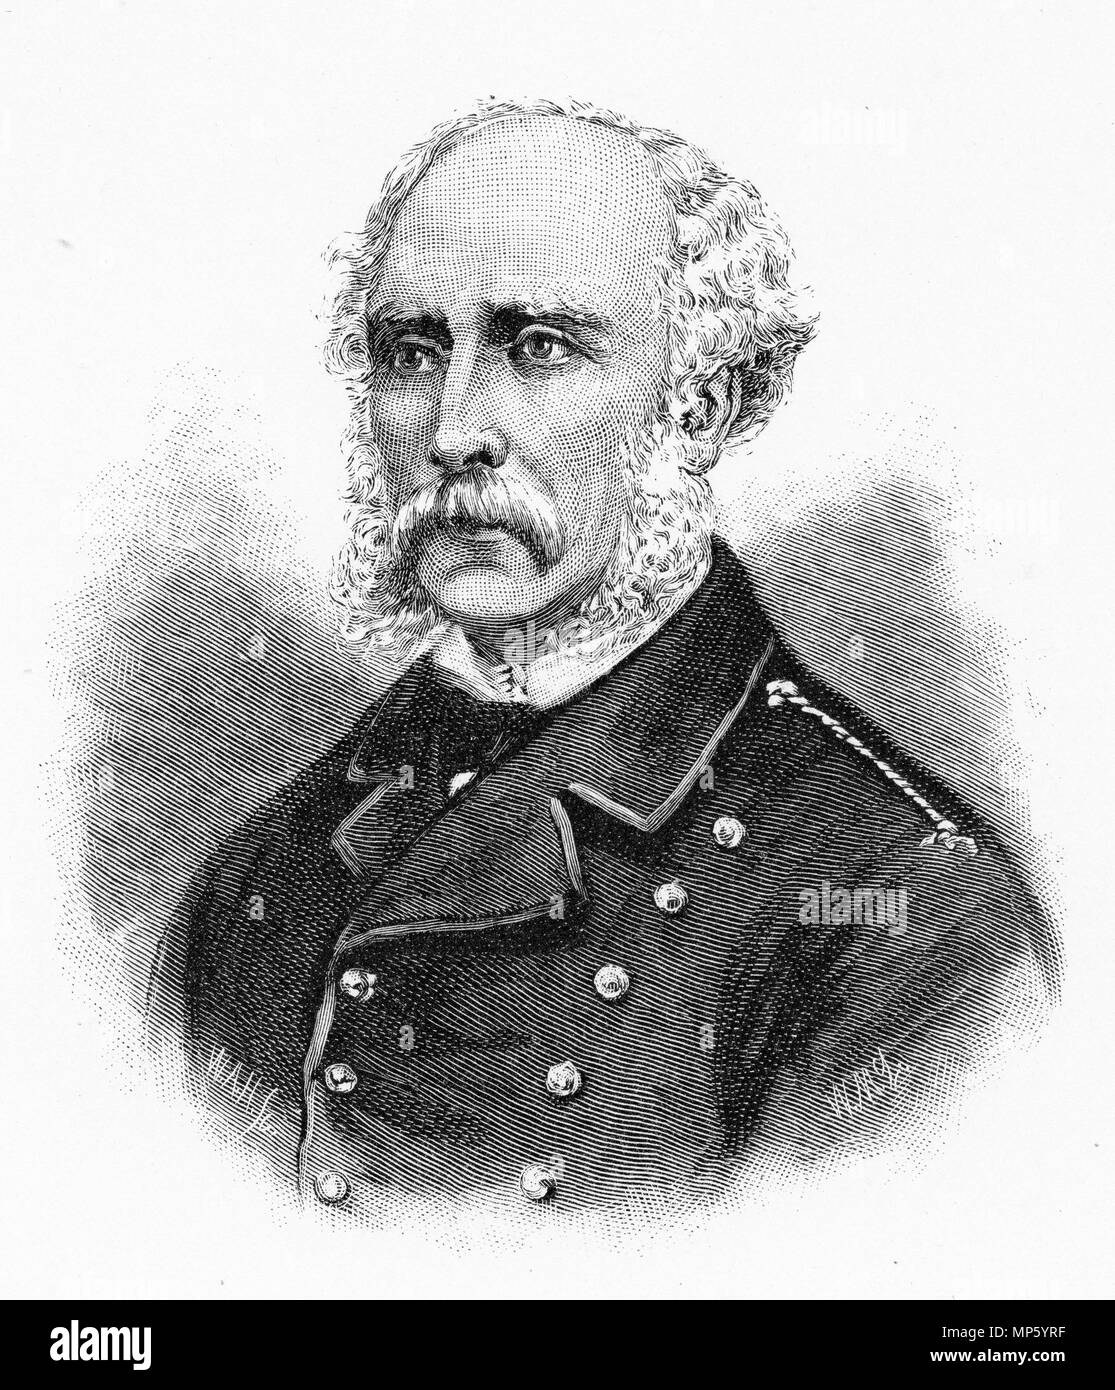 Engraving of the leader of the British forces during the New Zealand Land Wars, General Cameron. From the Picturesque Atlas of Australasia Vol 3, 1886 - Stock Image